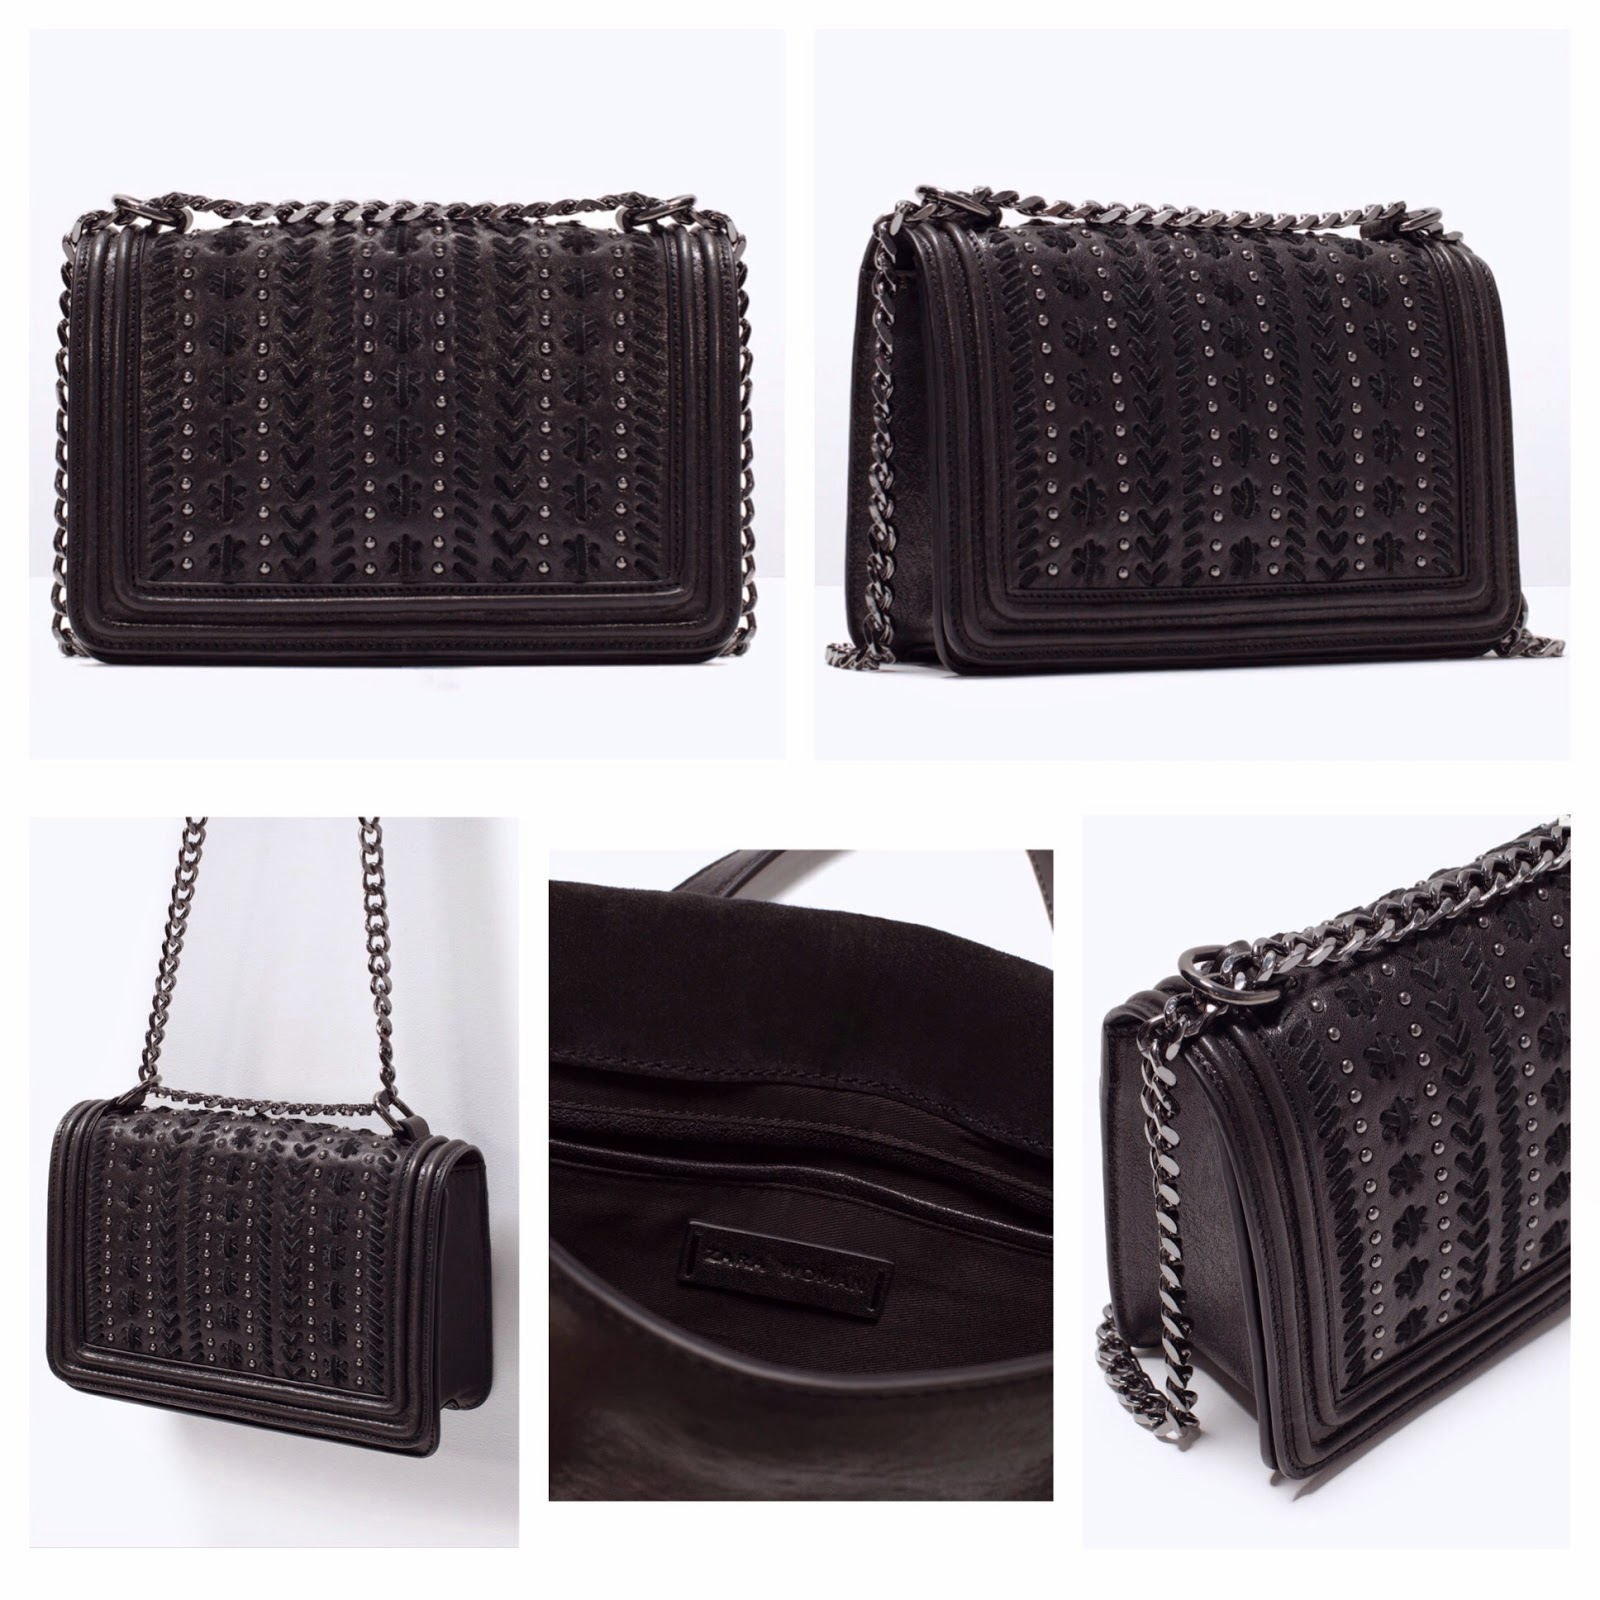 Zara Dupe Steal The Style Of Boy Chanel Handbag Double Strap Bag